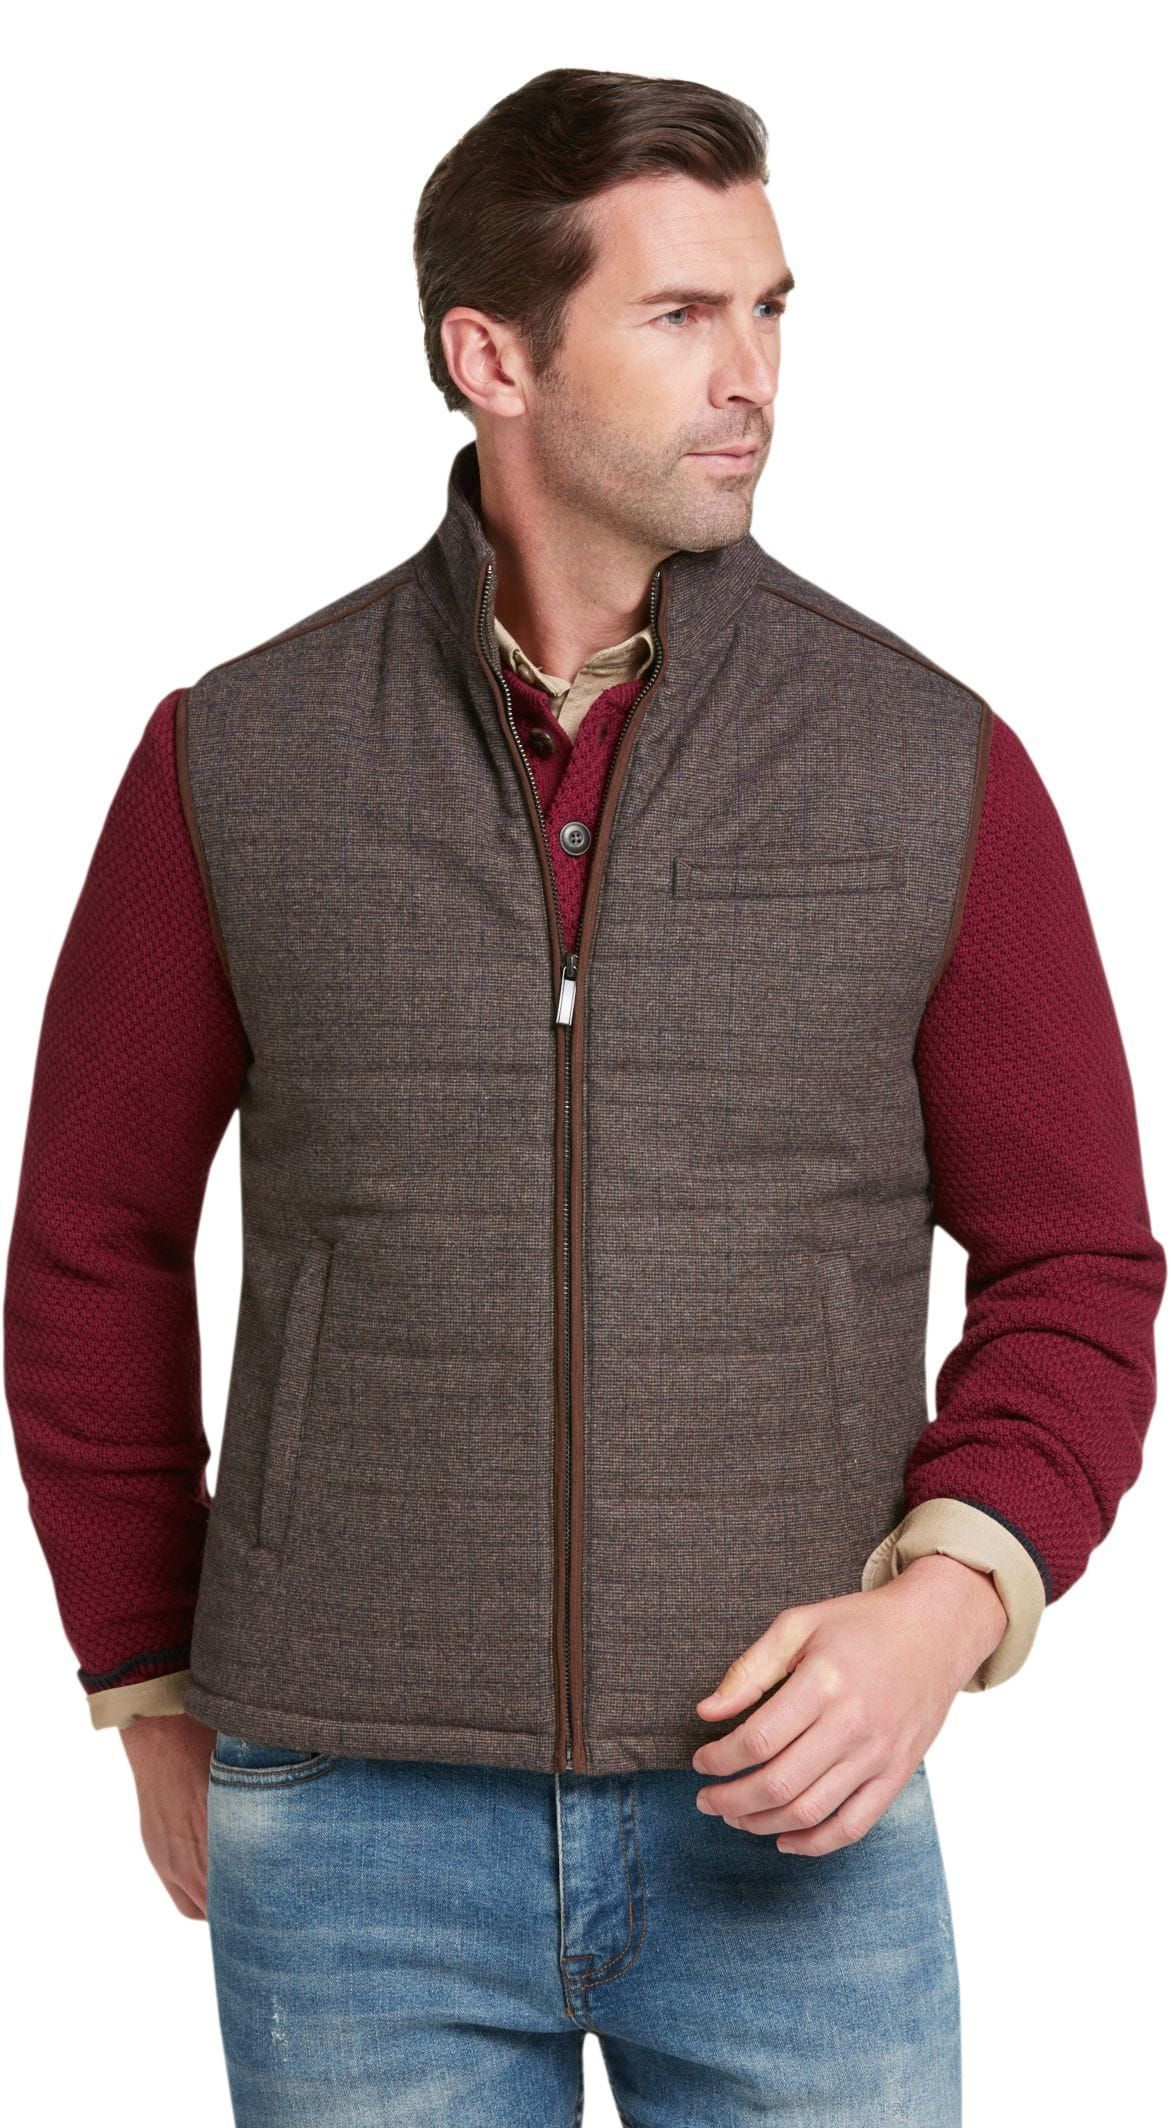 e6573b03f2b Reserve Collection Tailored Fit Tweed Vest - Big   Tall CLEARANCE in ...